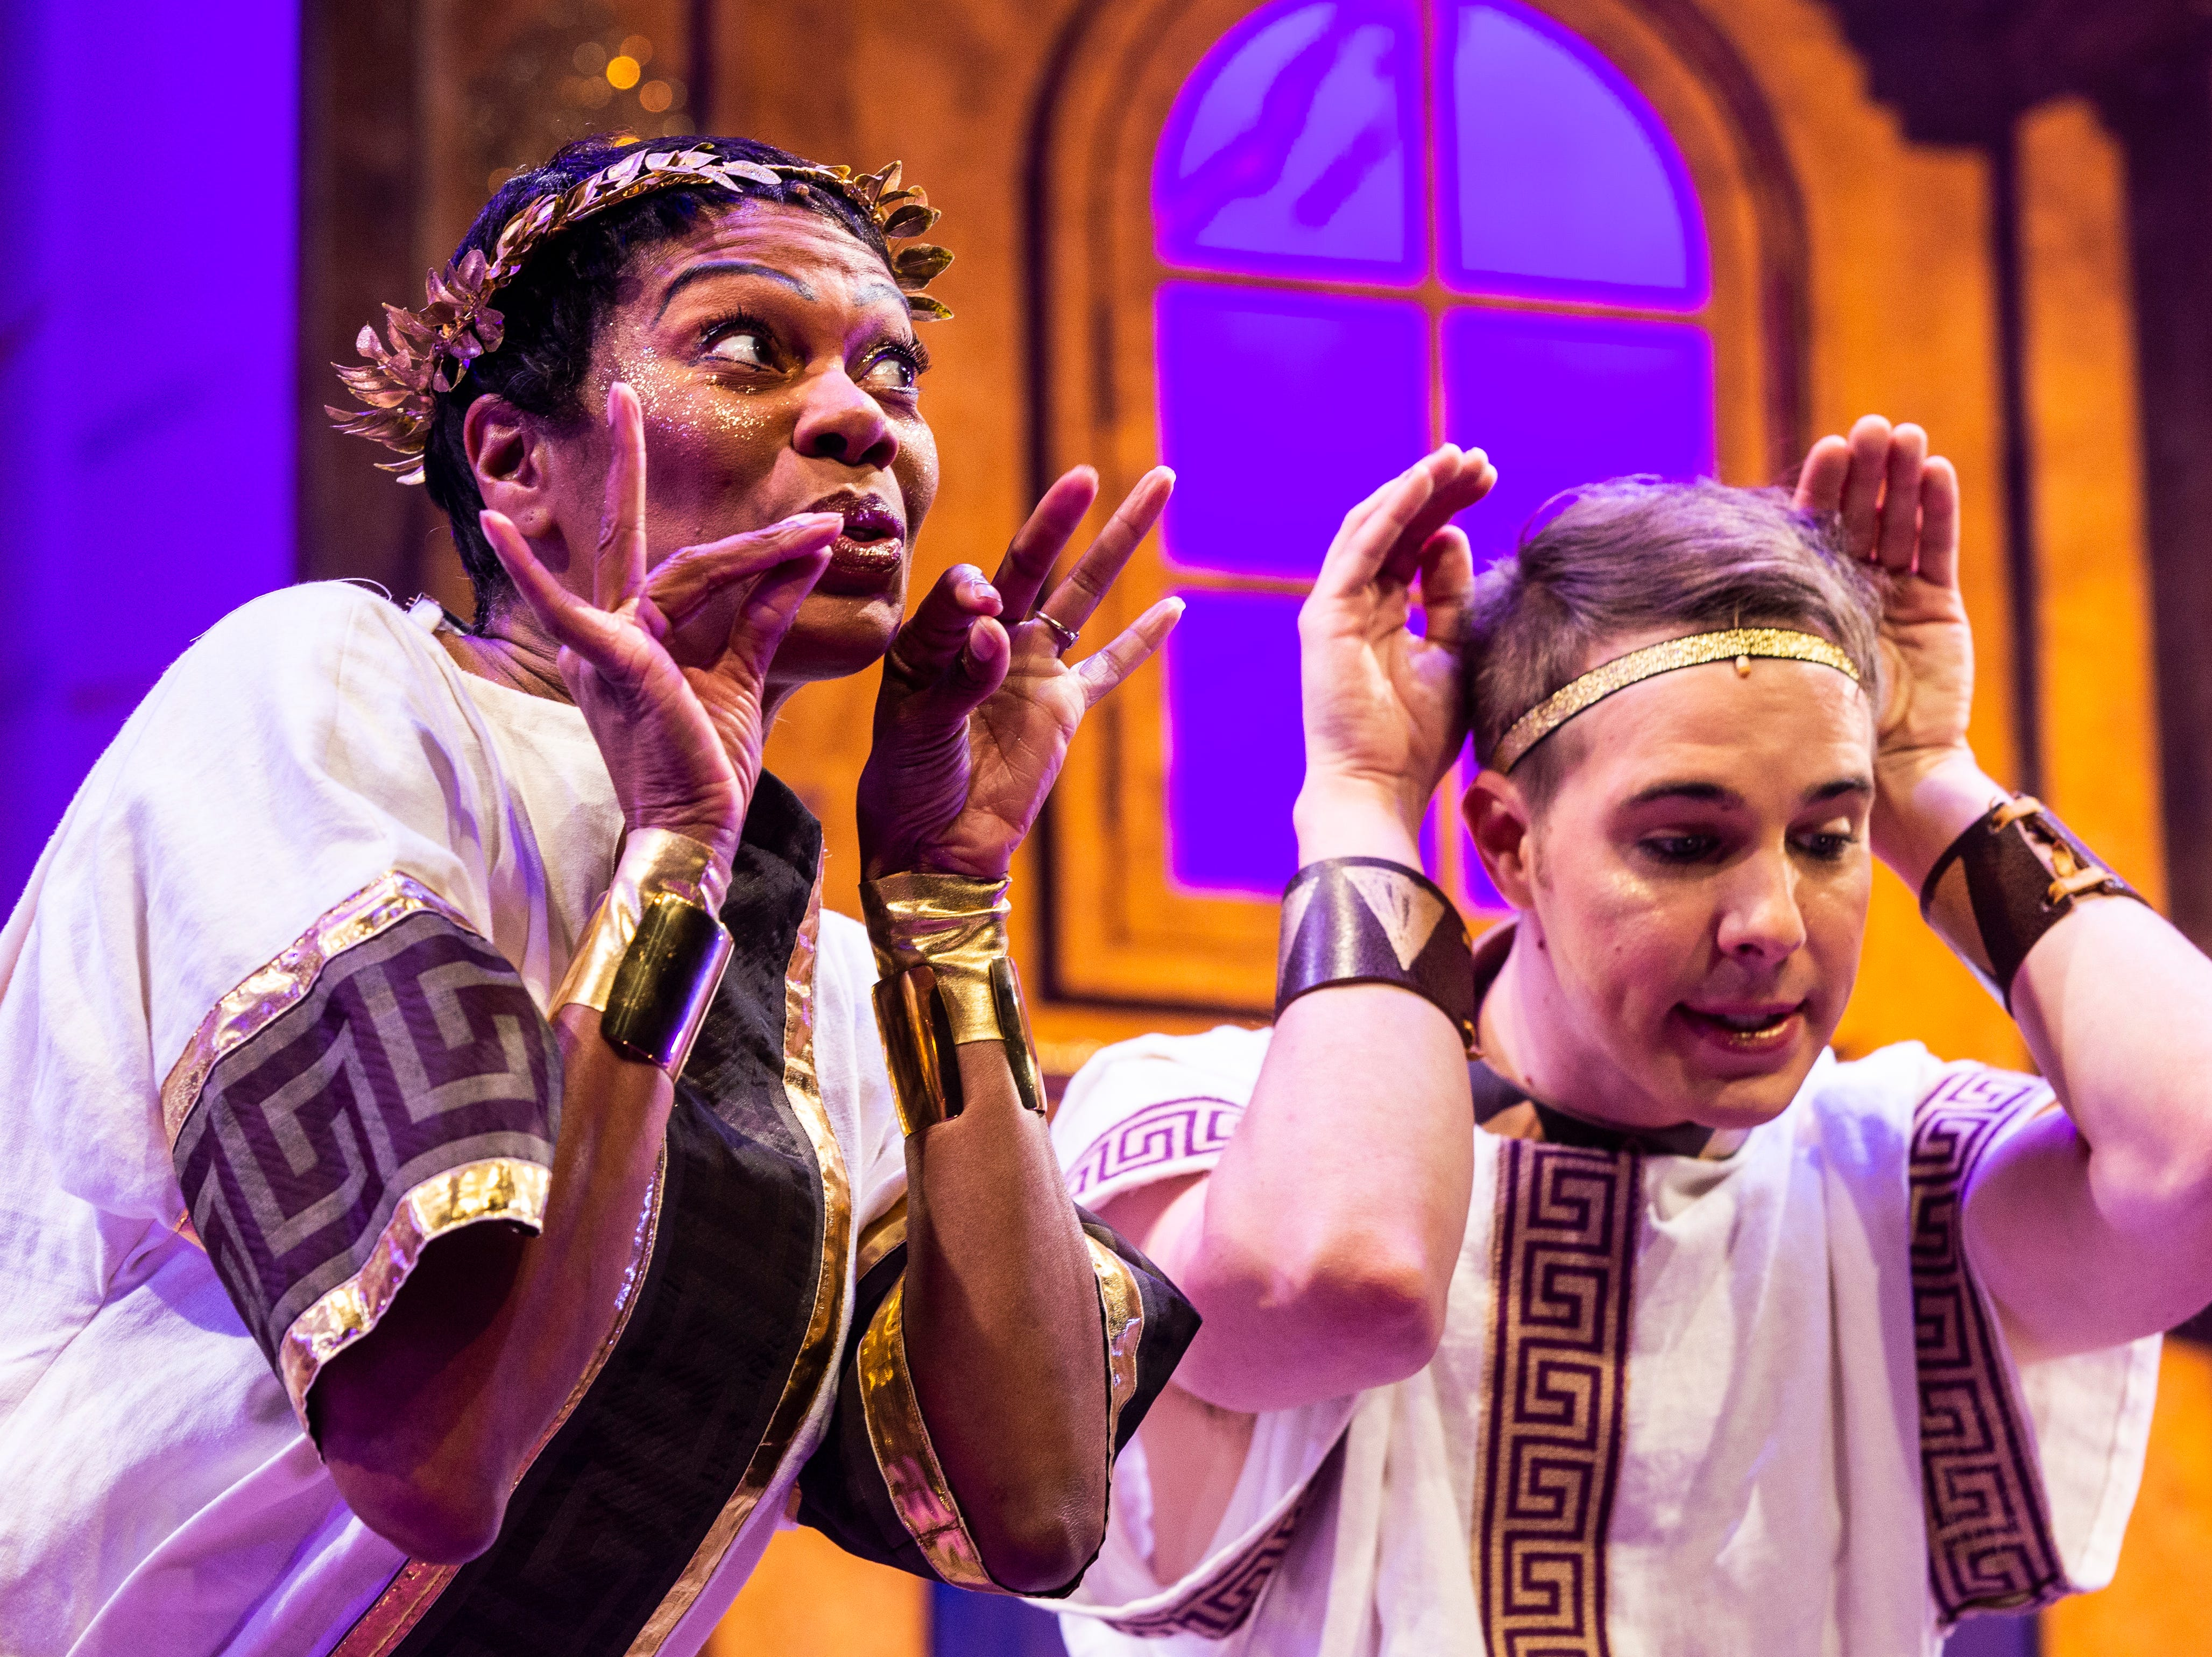 """Stephanie Pope and John Wascavage rehearse a scene for Gulfshore Playhouse's upcoming production of """"A Funny Thing Happened on the Way to the Forum"""" at The Norris Center in Naples on Tuesday, Nov. 13, 2018."""